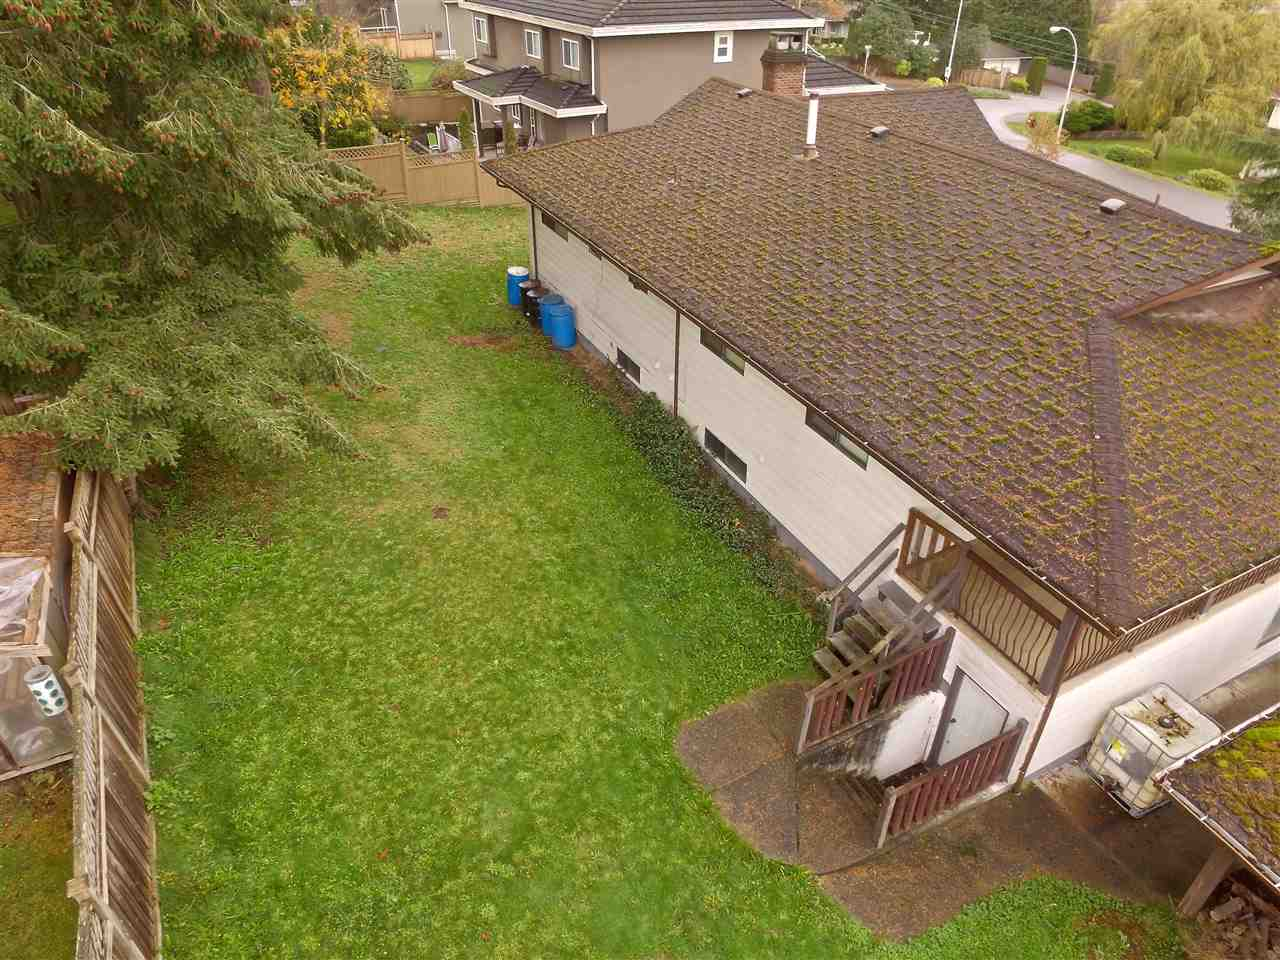 "Photo 10: 16495 78 Avenue in Surrey: Fleetwood Tynehead House for sale in ""FLEETWOOD"" : MLS® # R2122962"